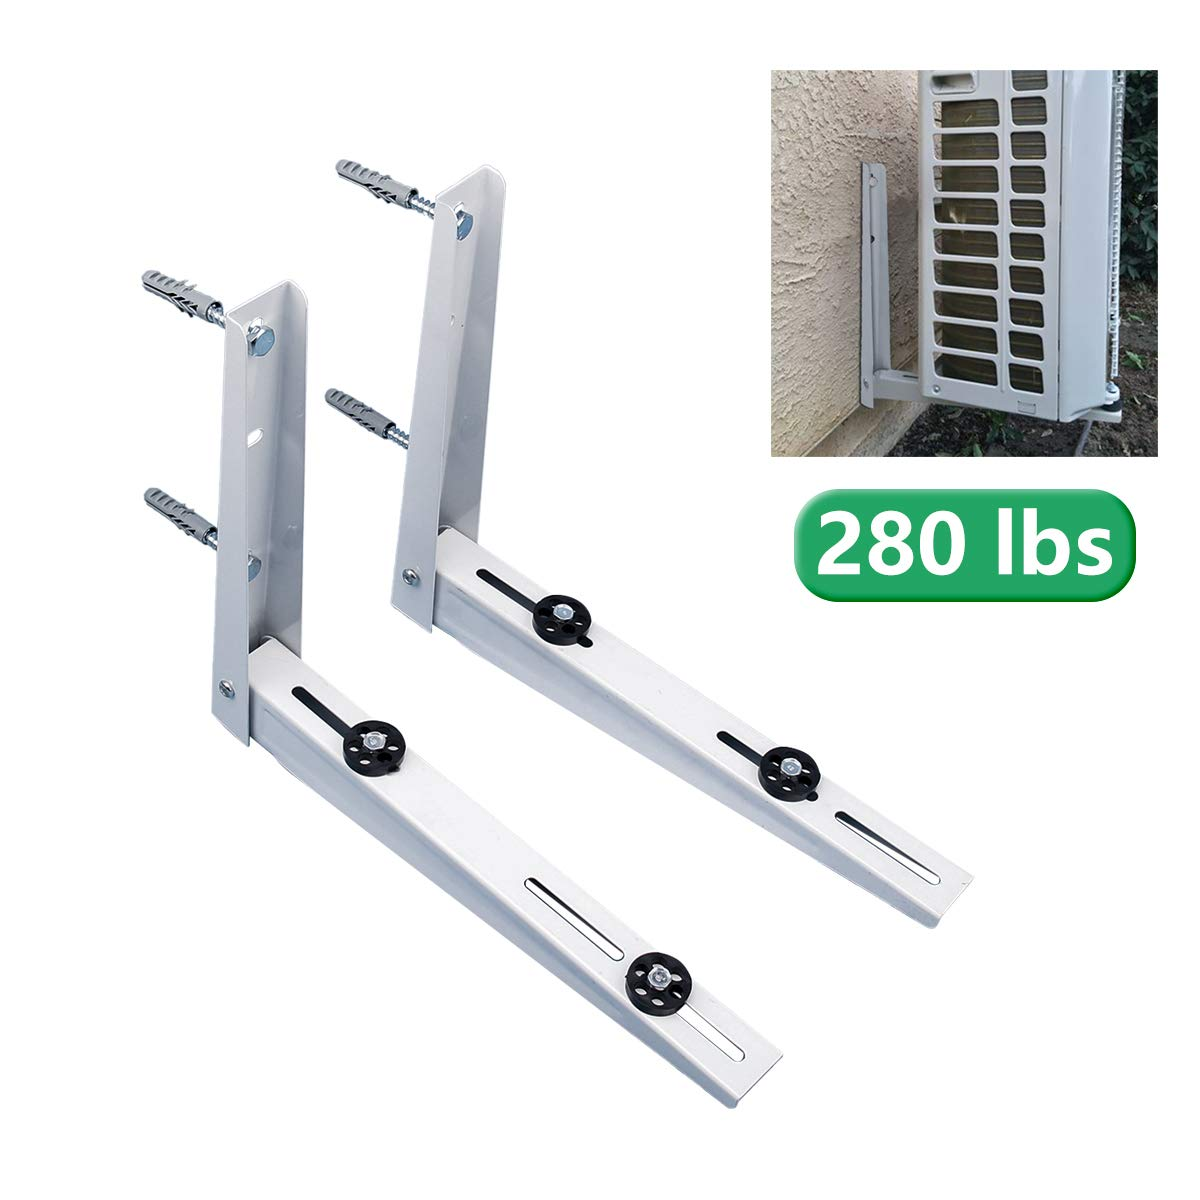 Forestchill Foldable Wall Mount Bracket, fits Mini Split Ductless Outdoor Unit Air Conditioner Condensing Unit Heat Pump System Condenser Universal Design, Support up to 280lbs, 9000-18000 BTU, 1-2P